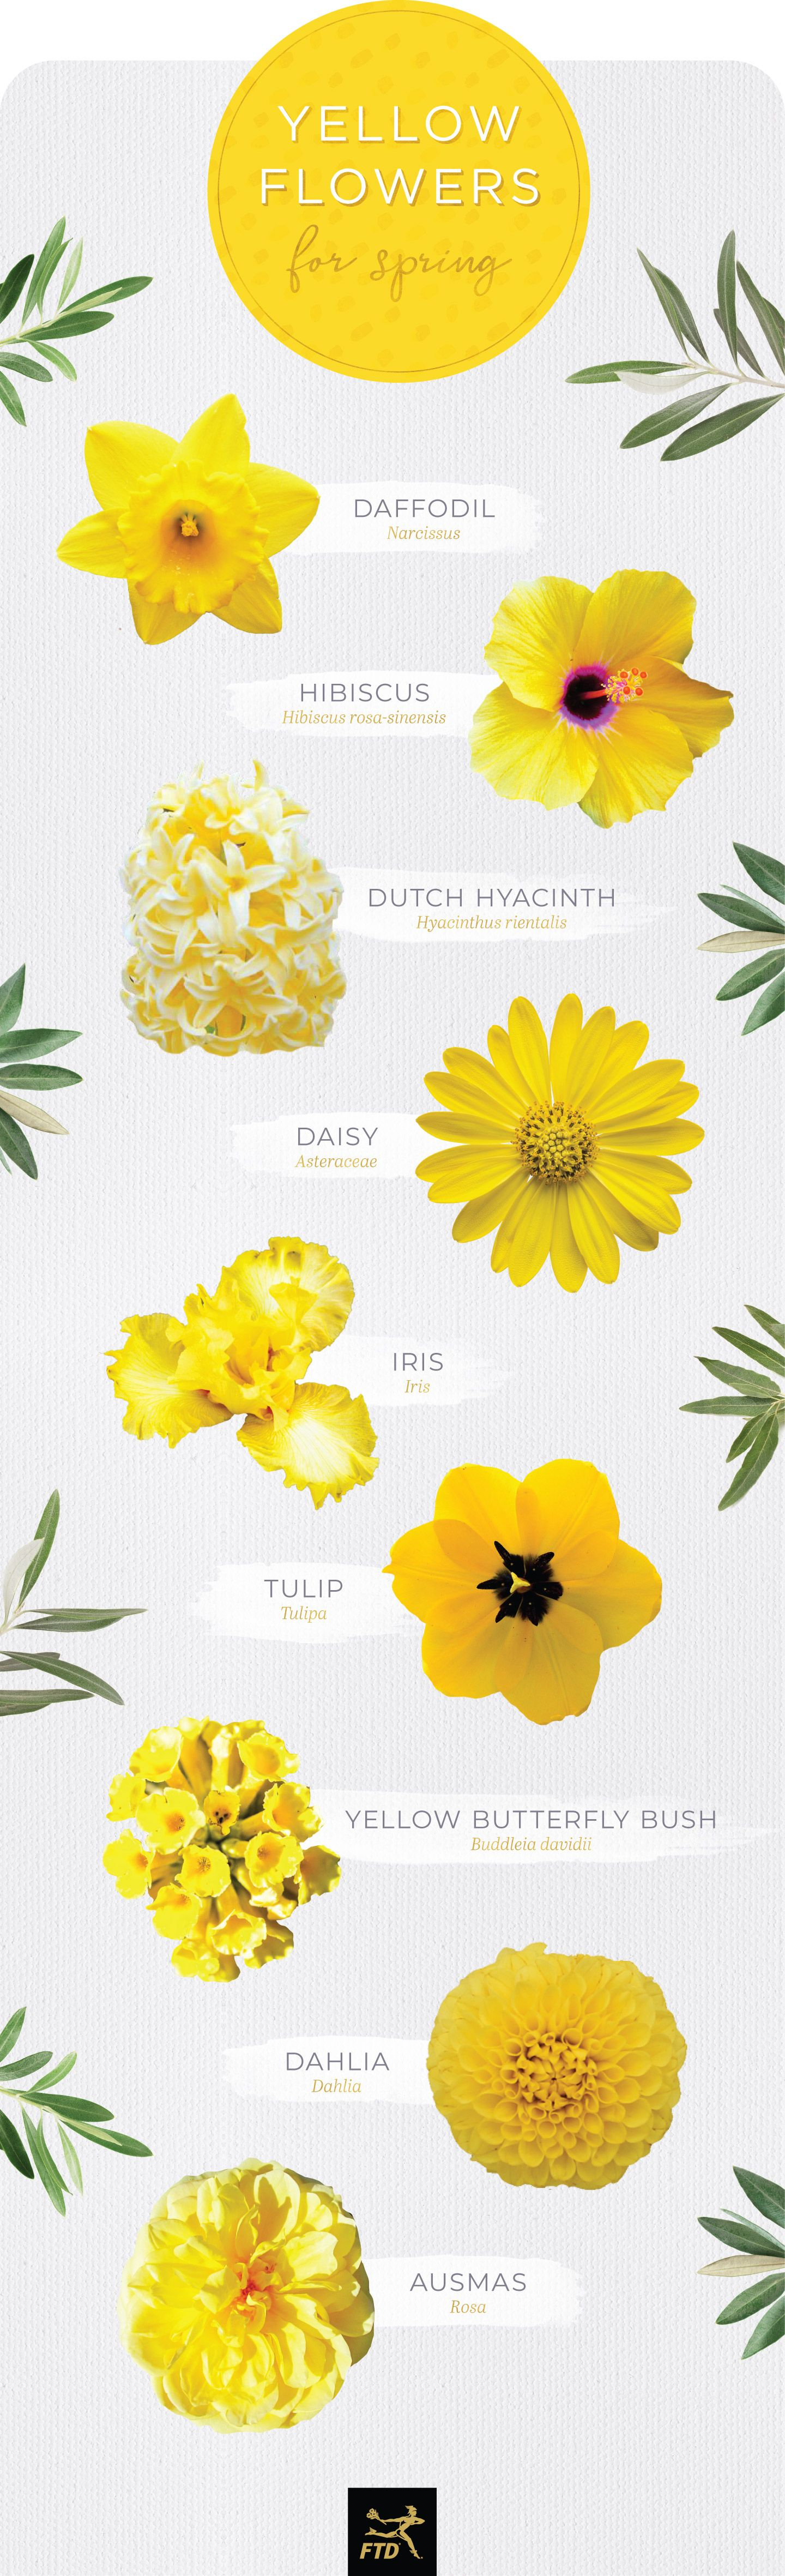 Yellow Flower Shaped Logo - 30 Types of Yellow Flowers - FTD.com